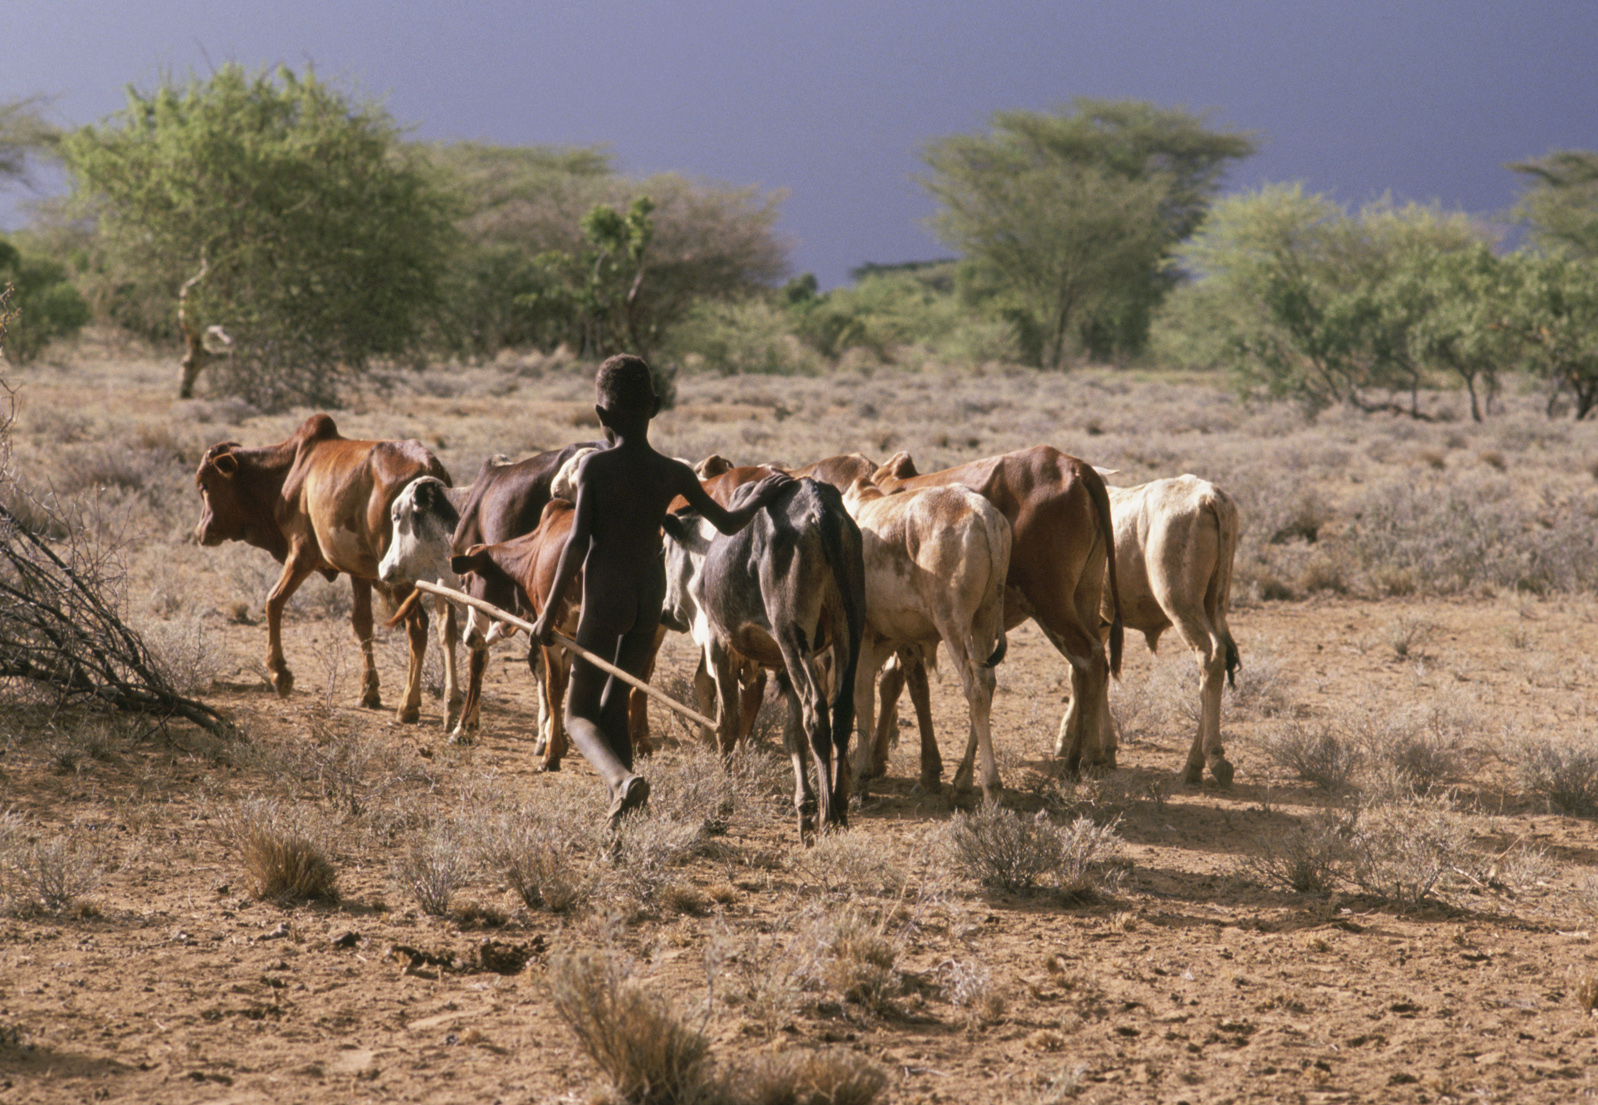 A Turkana boy herds his family's cows in Kenya